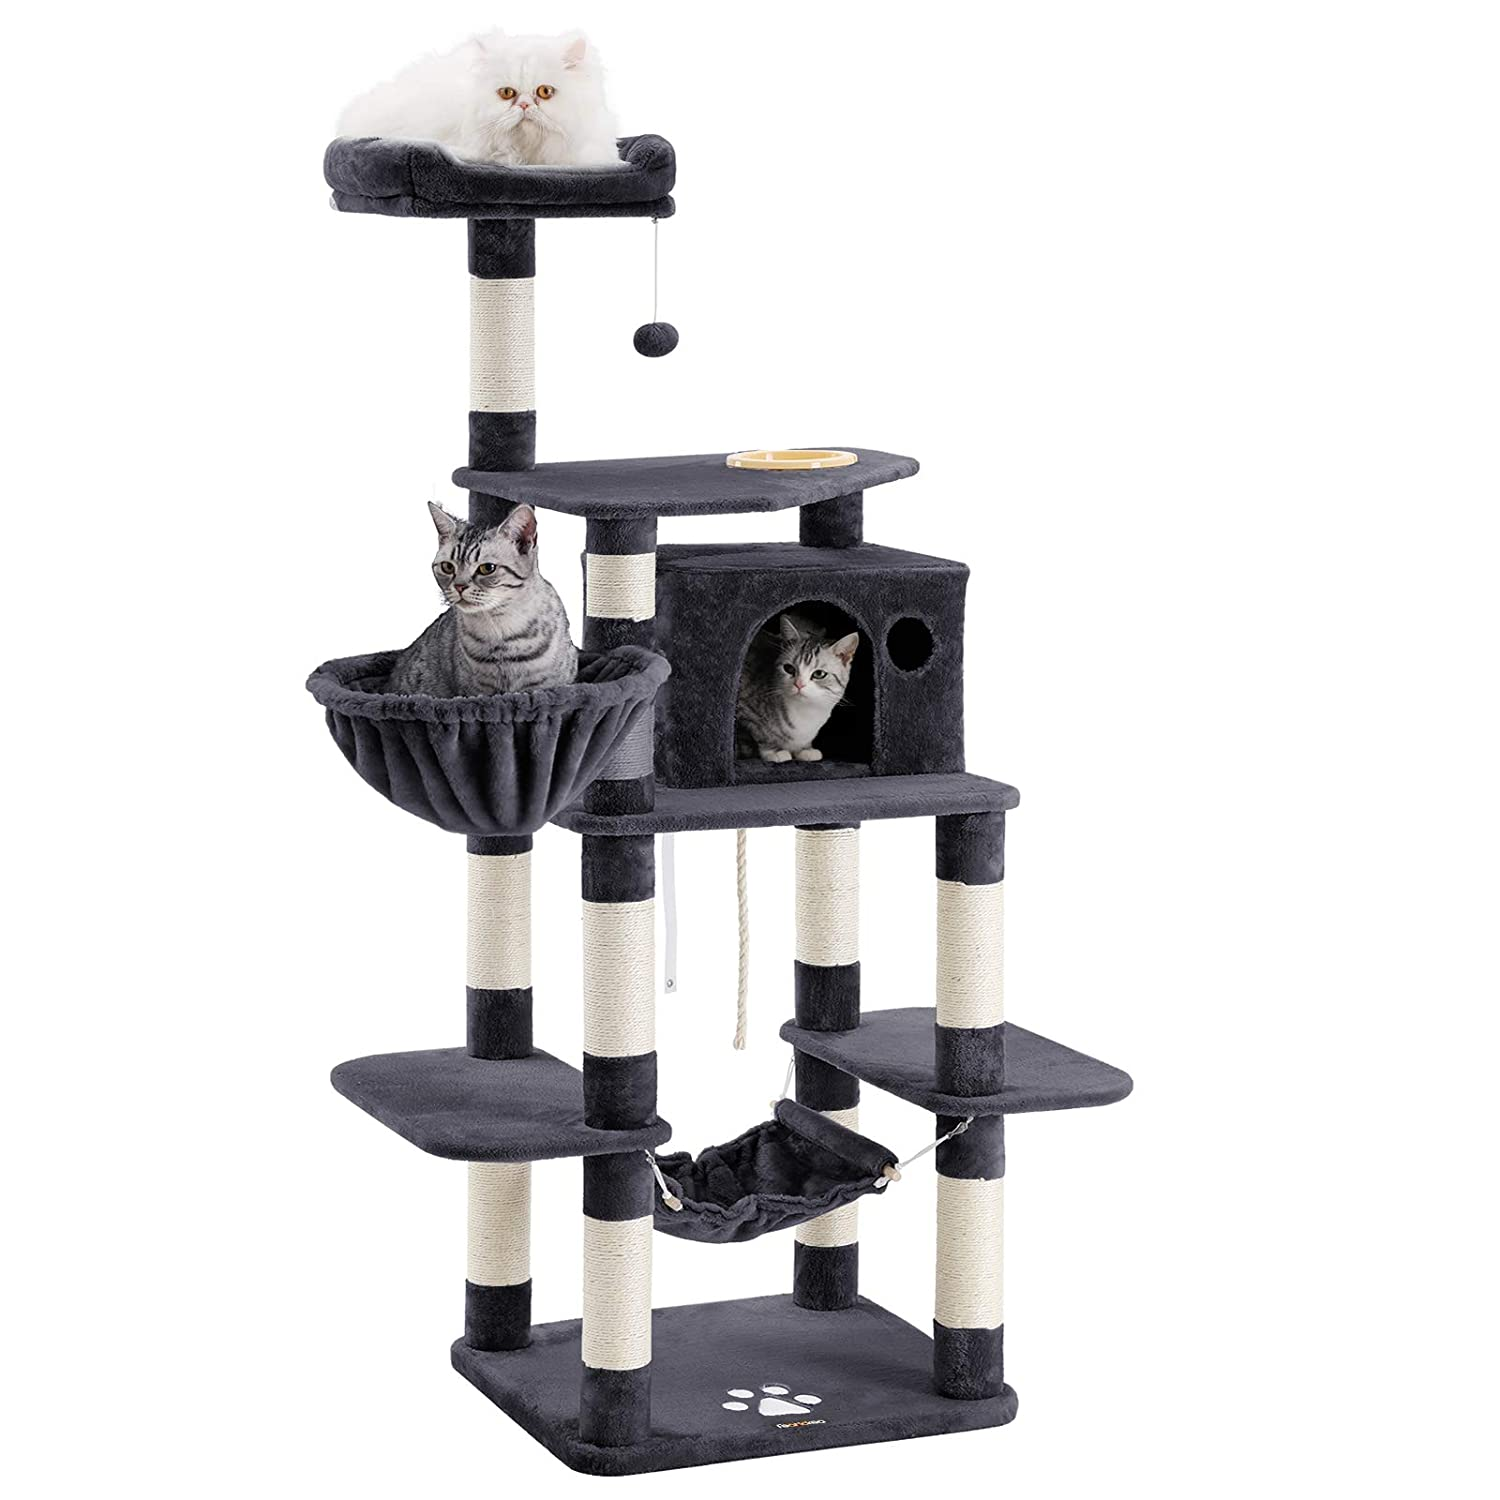 FEANDREA 68.5 inches Sturdy Cat Tree with Feeding Bowl, Cat Condos with Sisal Poles, Hammock and Cave, Padded Platform, Climbing Tree for Cats, Extra Large, Anti-toppling Devices